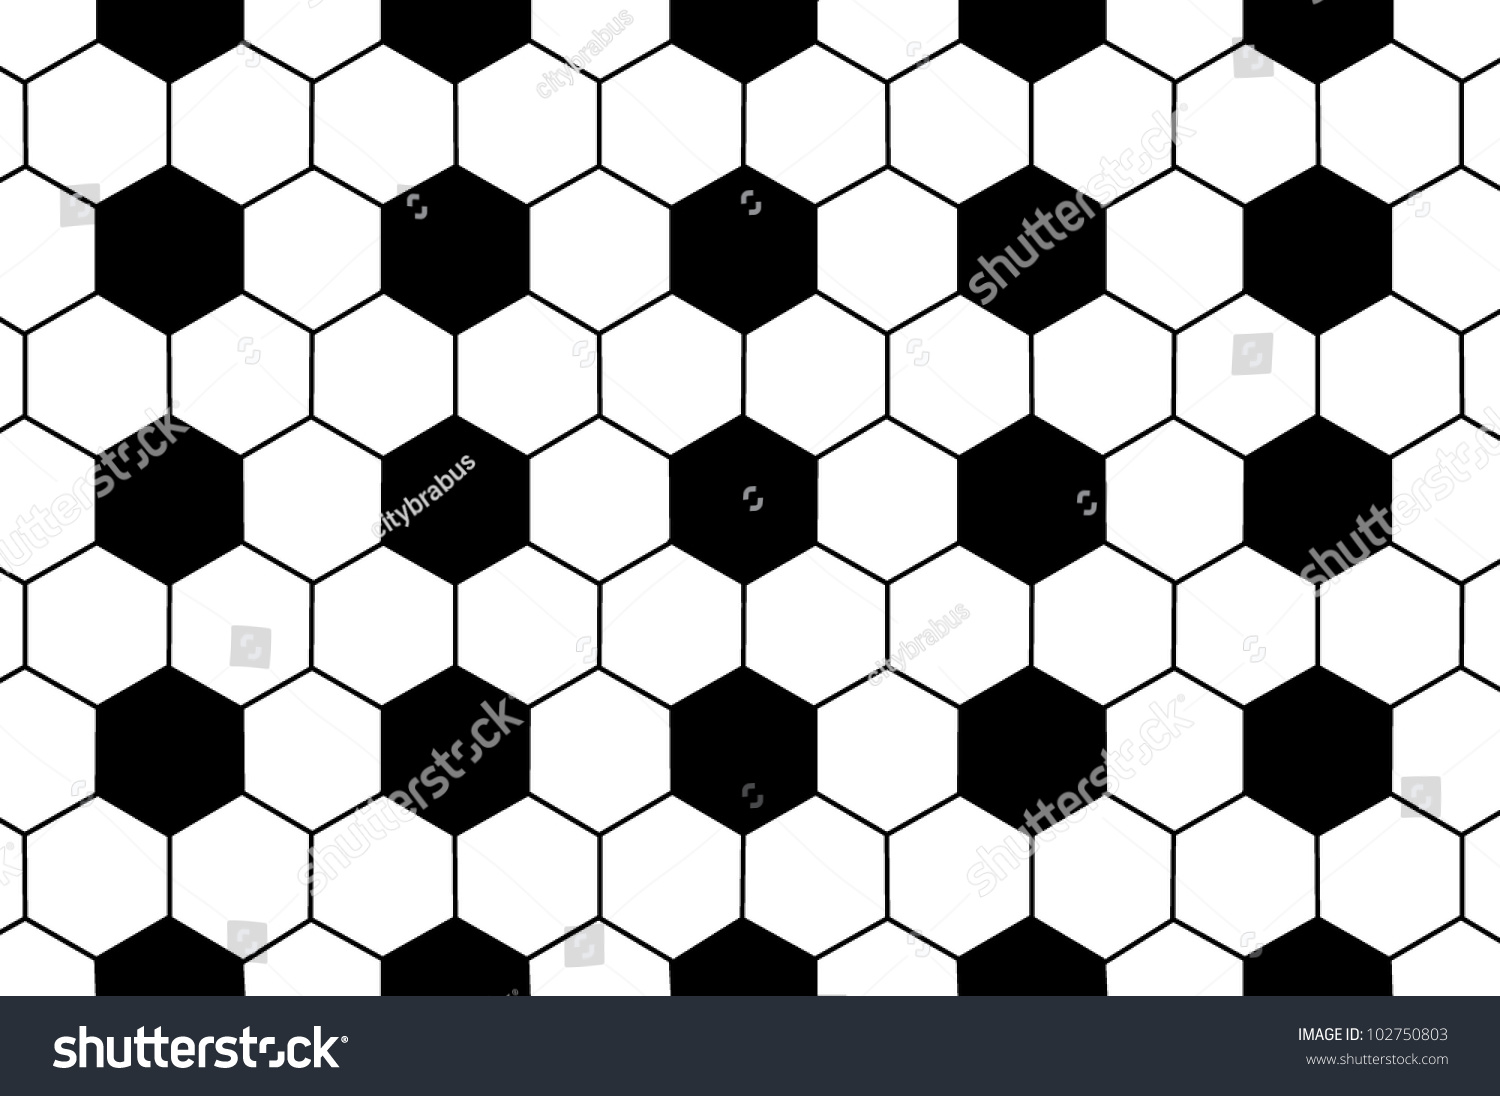 Black White Soccer Ball Pattern Background Stock ...